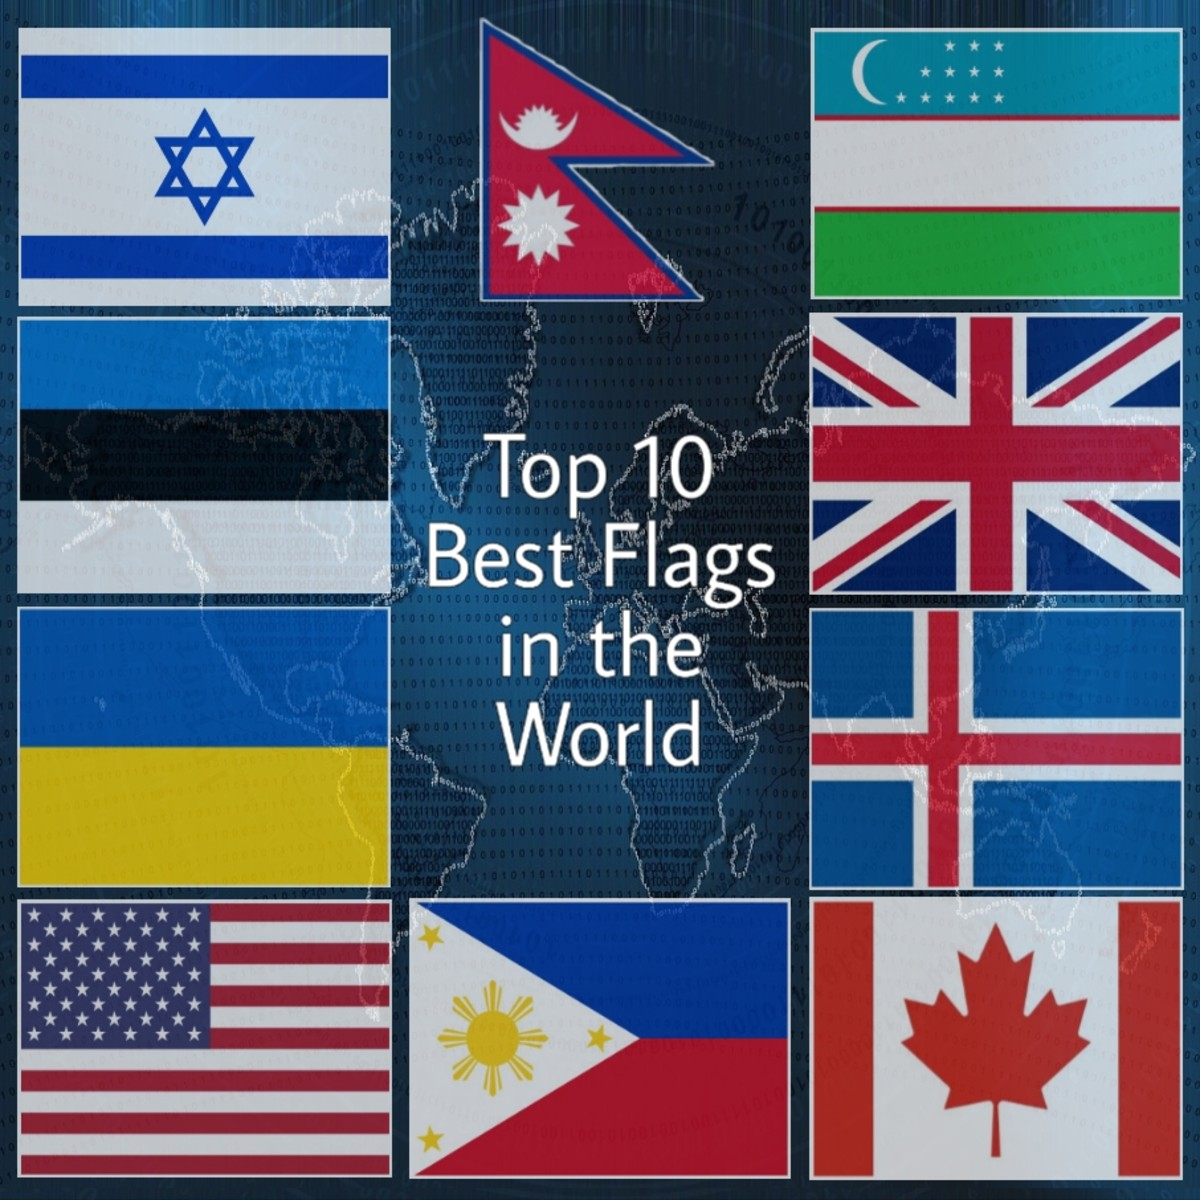 10 Best Designed National Flags in the World